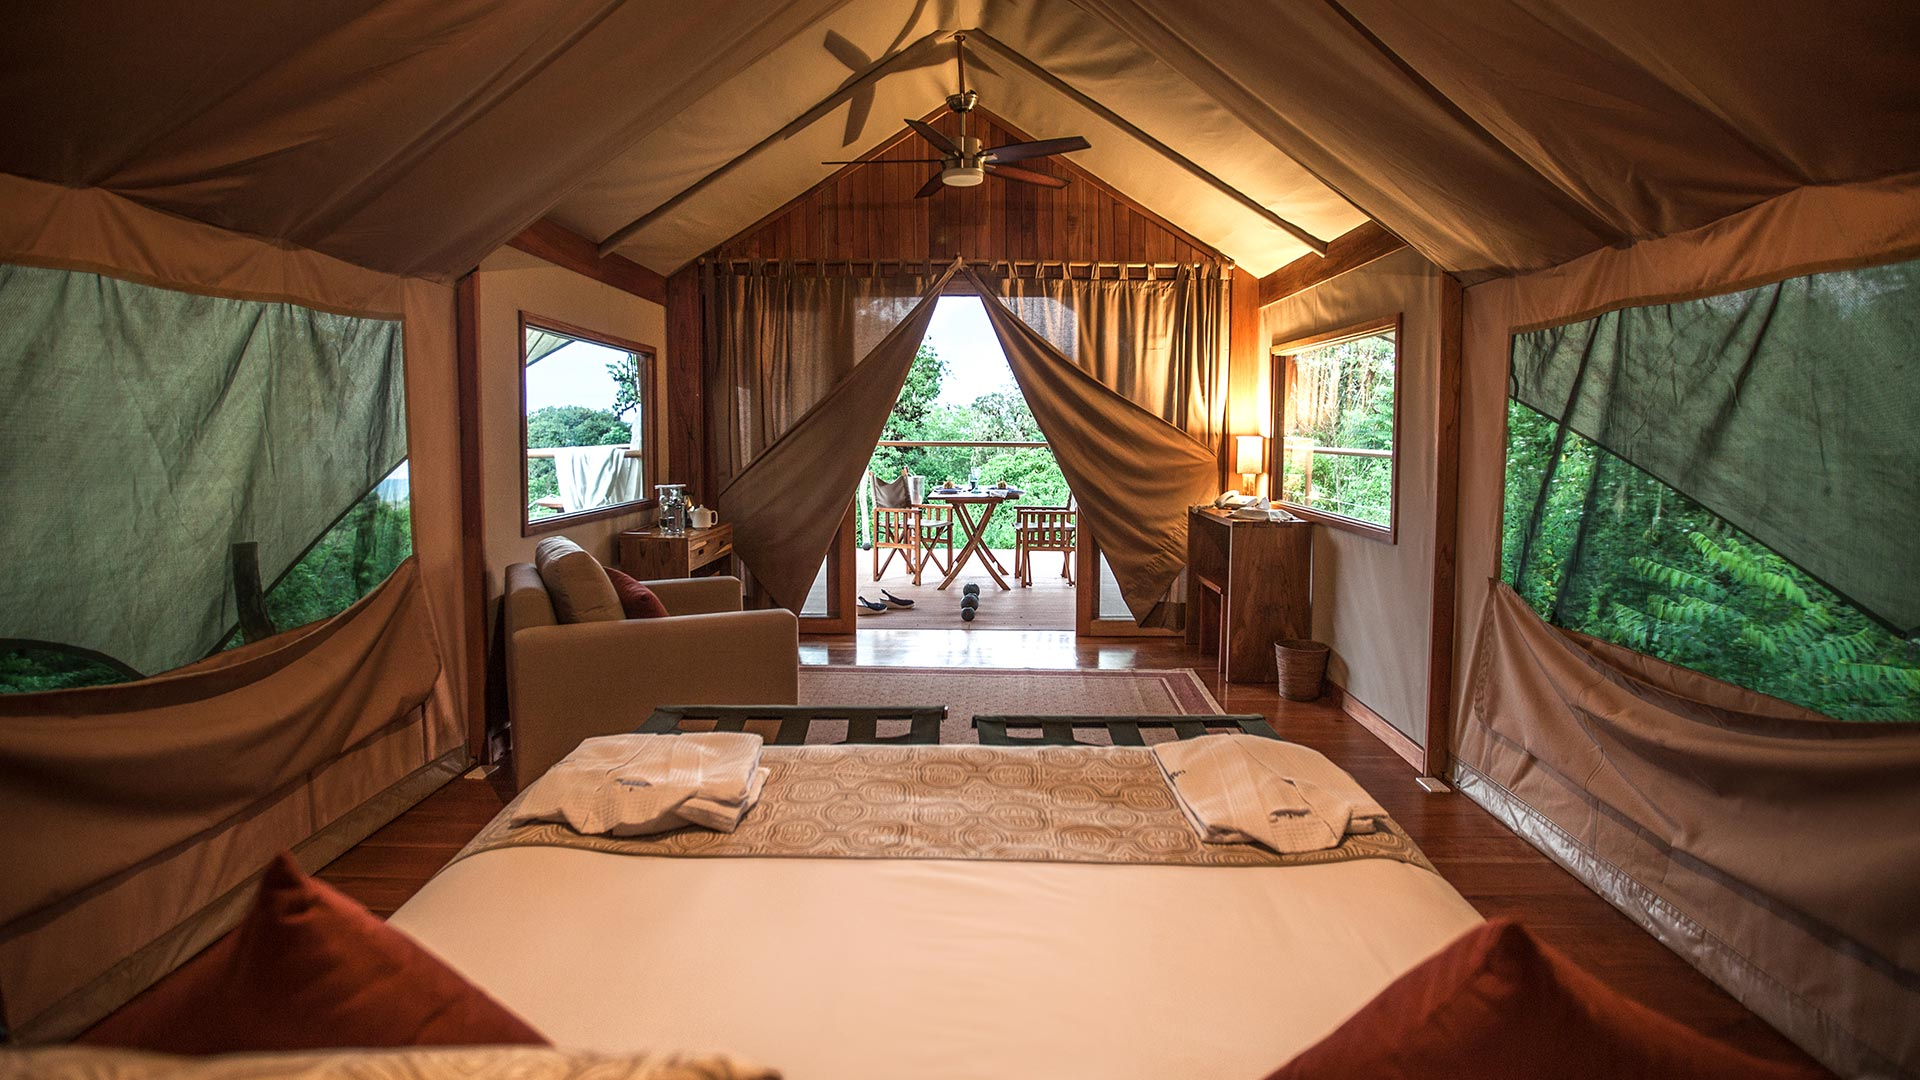 Luxury Safari Tents, Galapagos